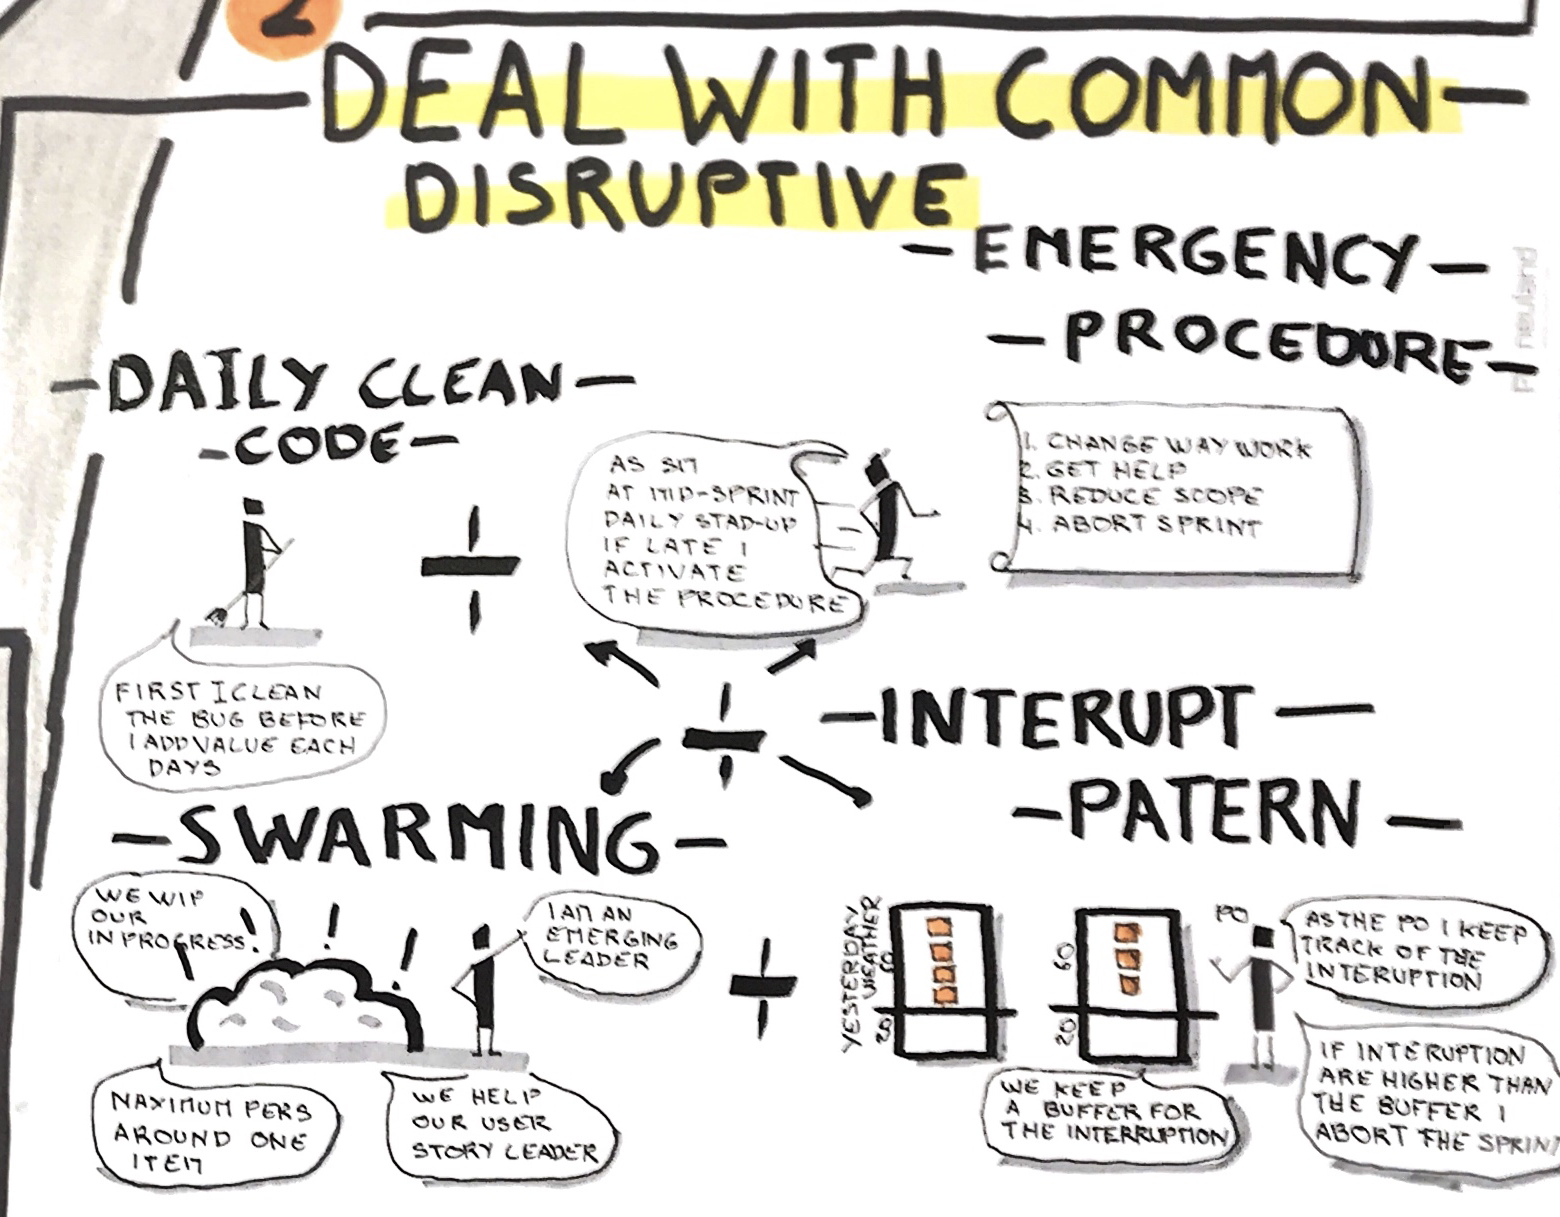 deal with common disruptive